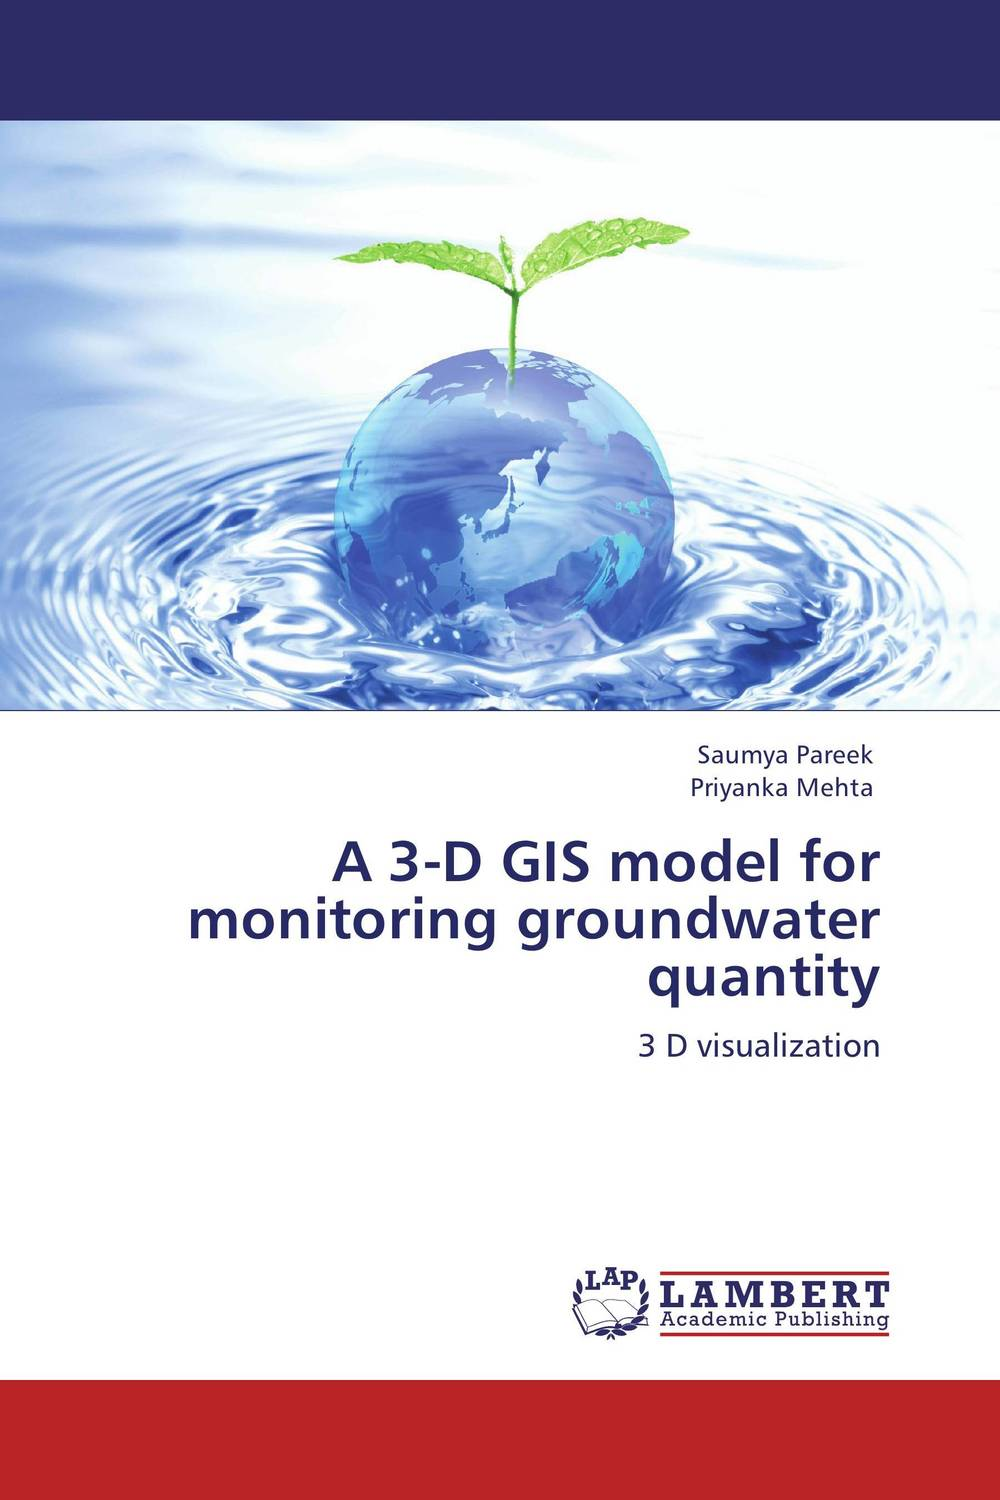 A 3-D GIS model for monitoring groundwater quantity gis